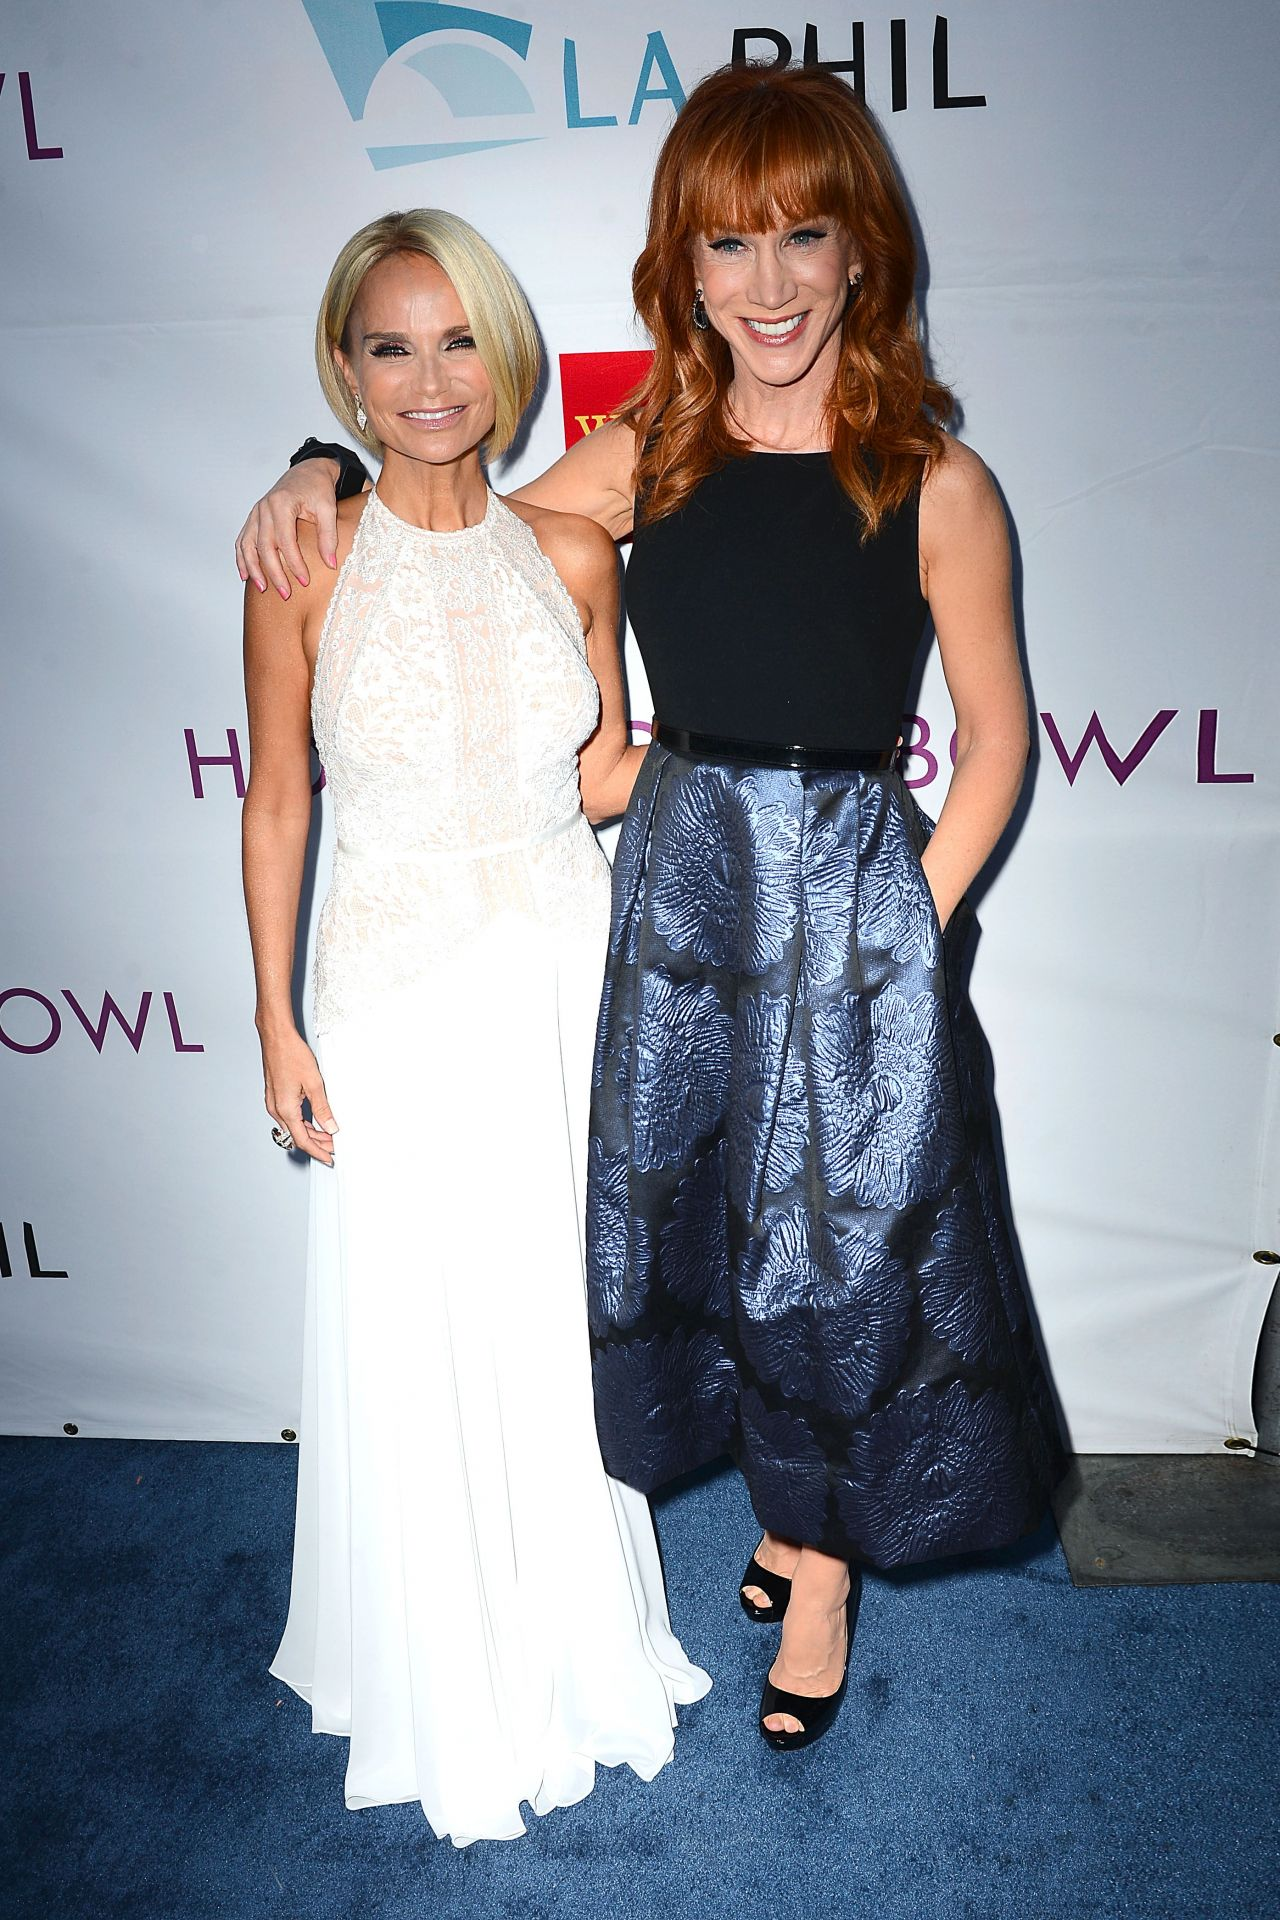 Kristin Chenoweth & Kathy Griffin - 2014 Hollywood Bowl Opening Night